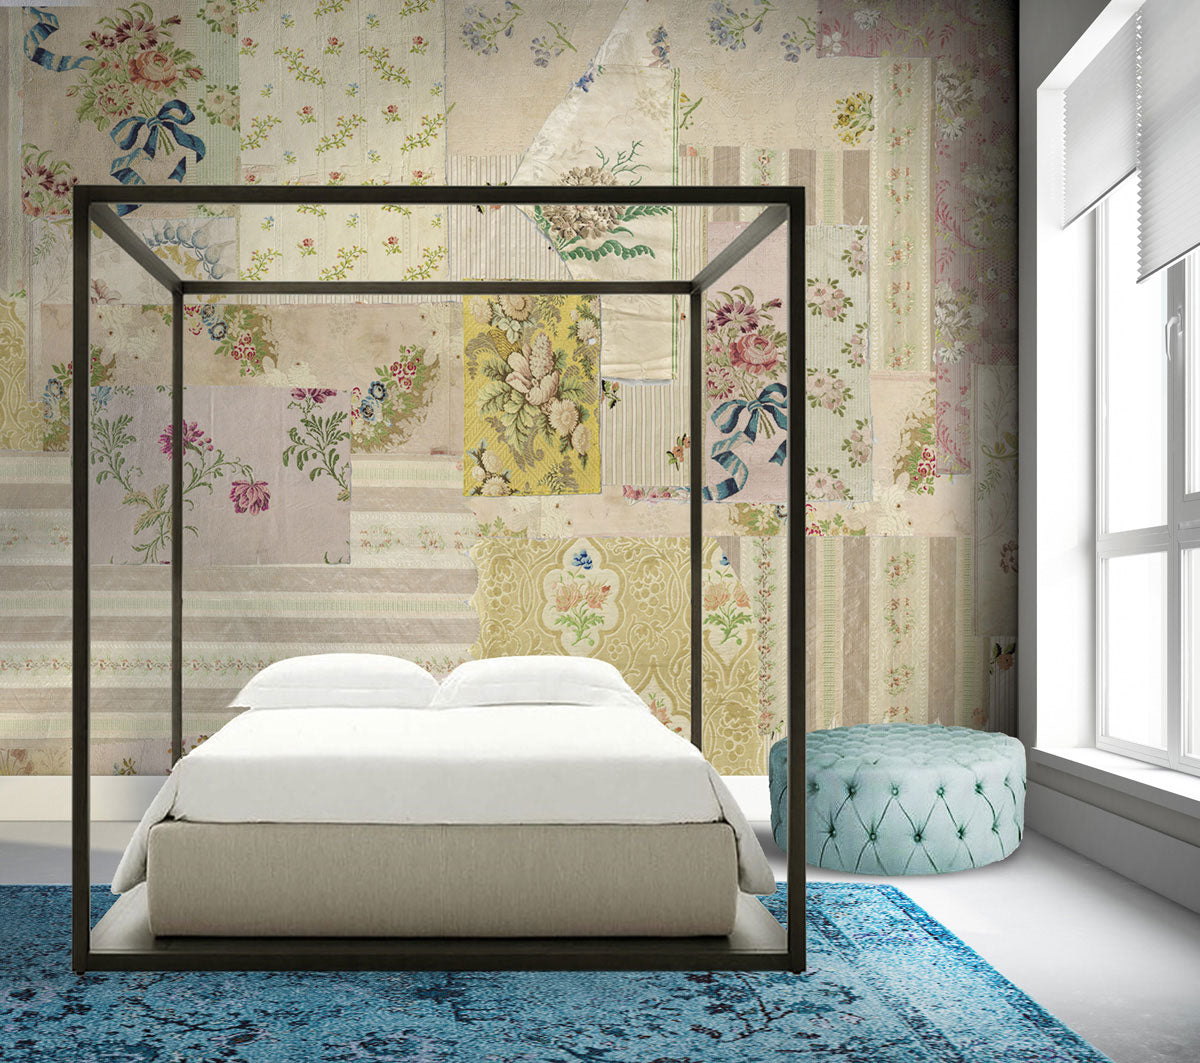 Salon De Couture French Inspired Wall Mural By Back To The